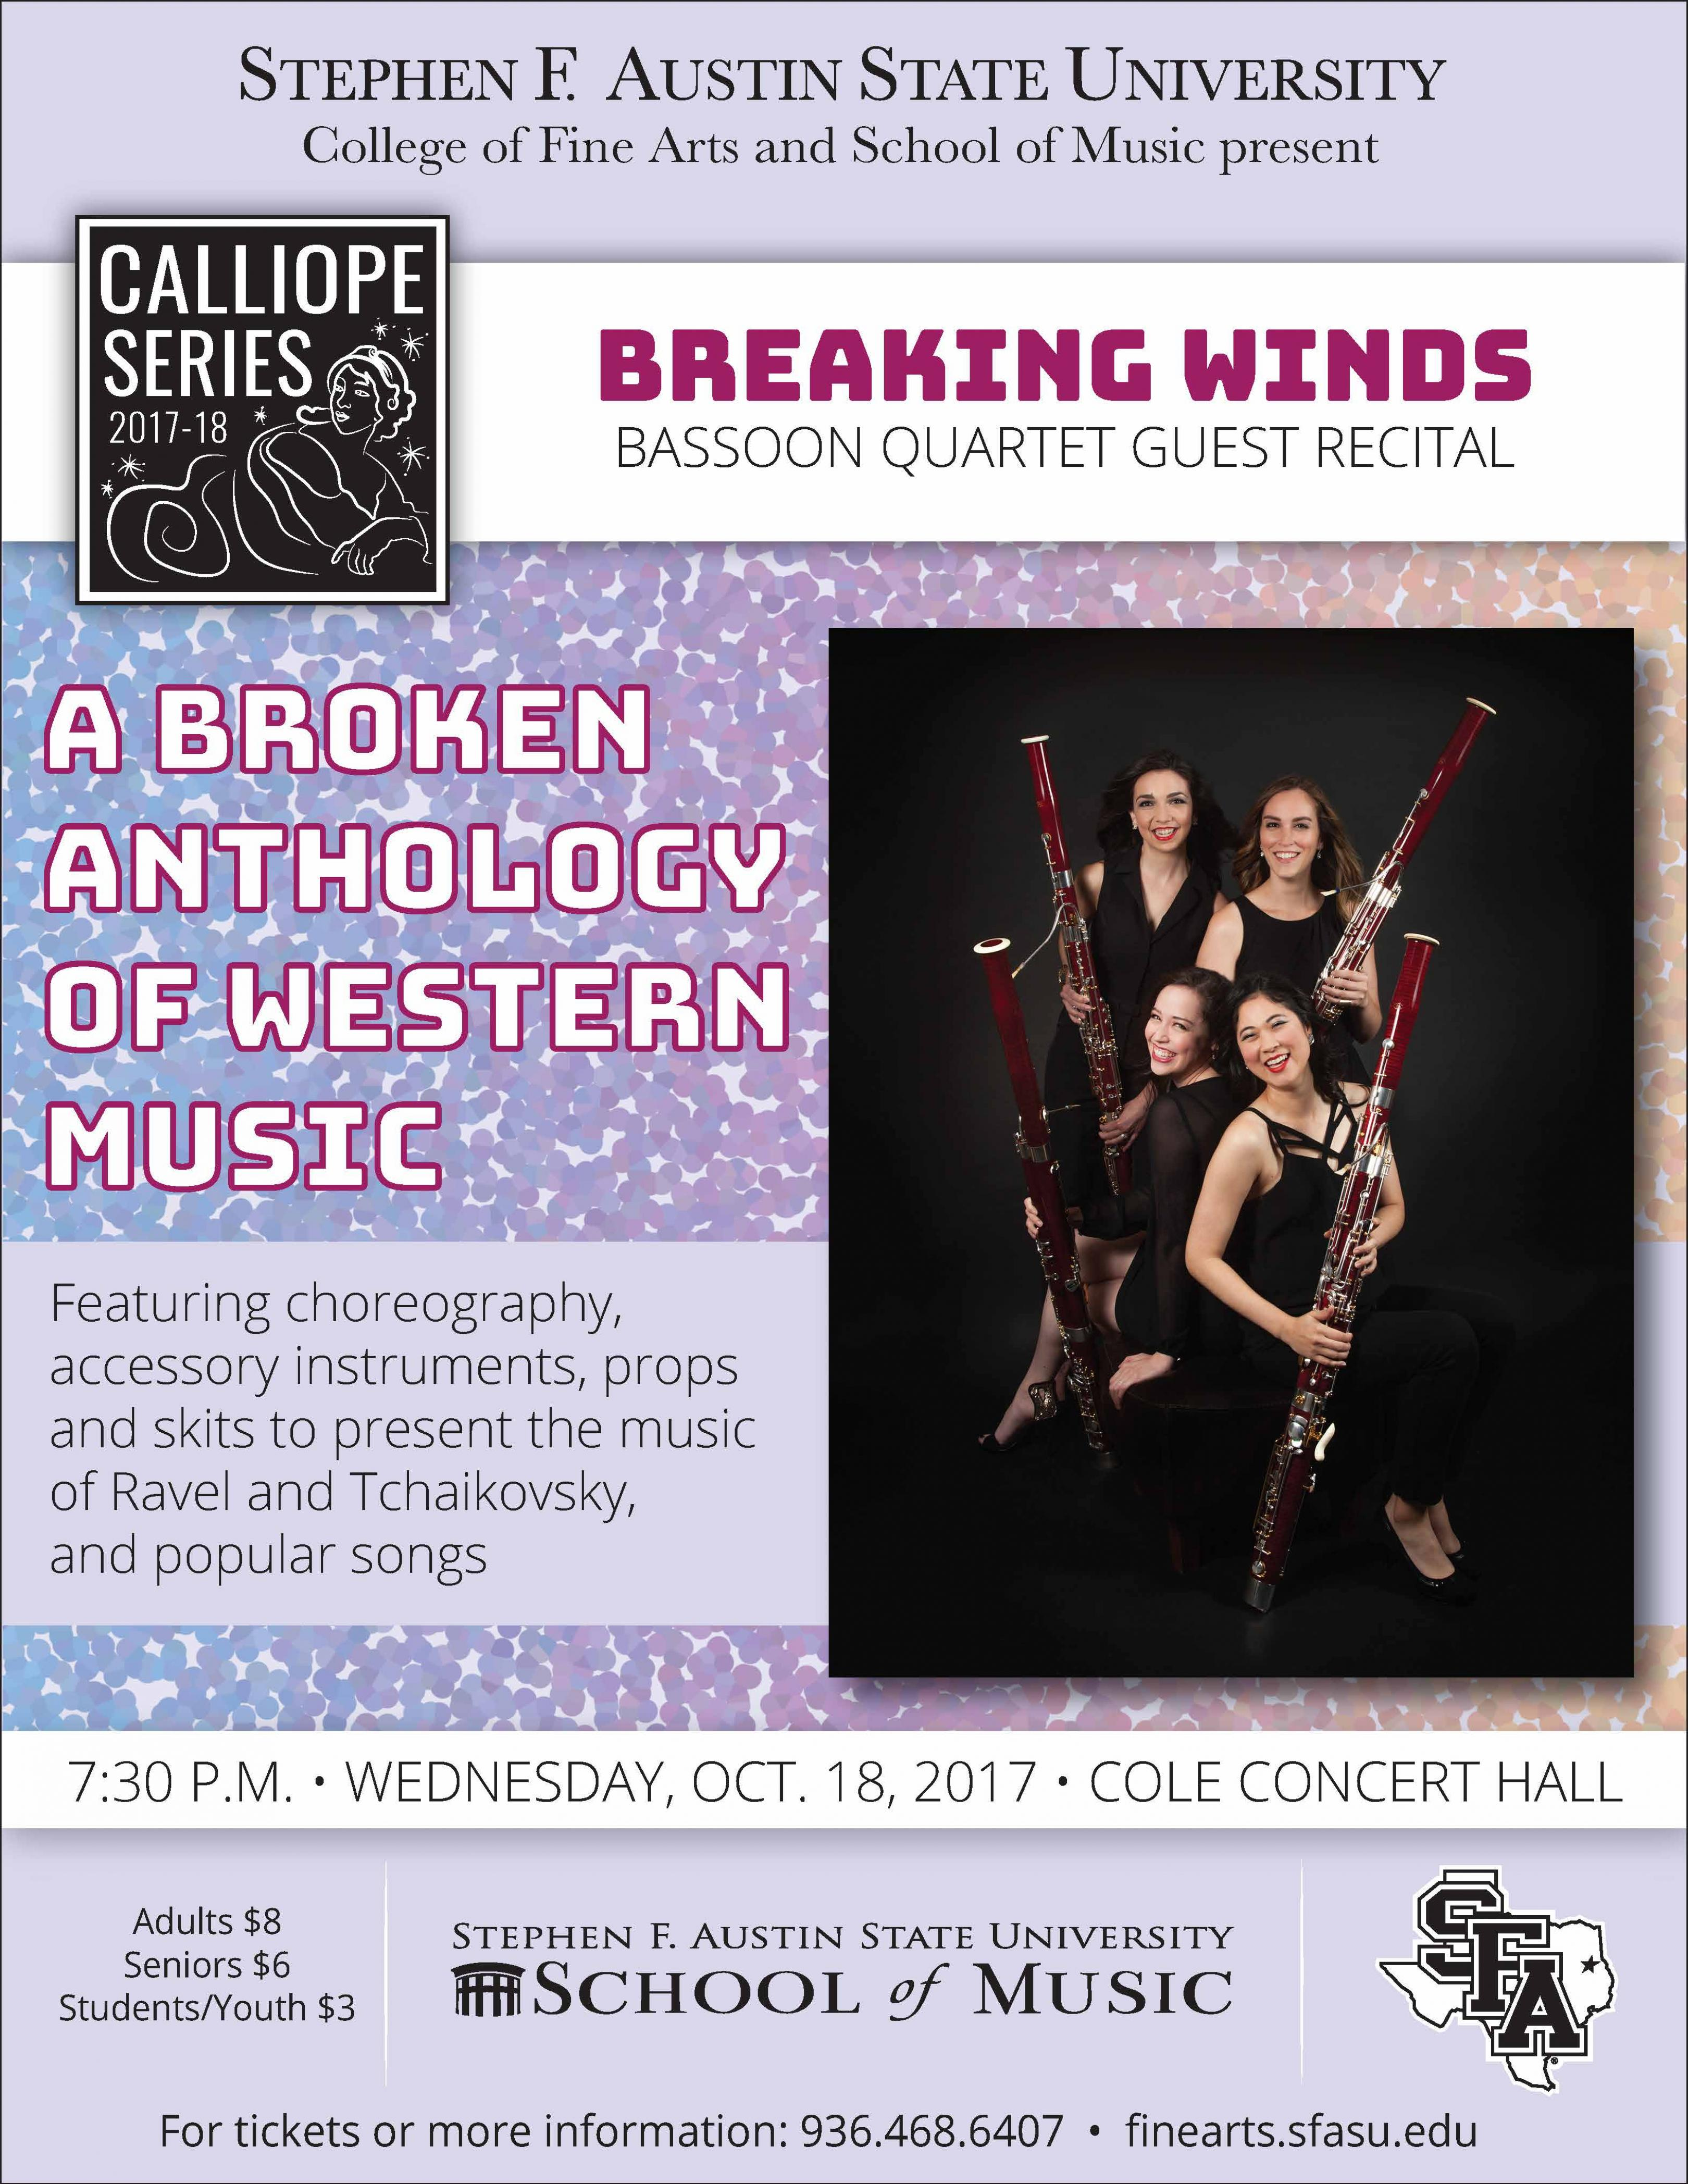 publicity image for Breaking Winds Bassoon Quartet